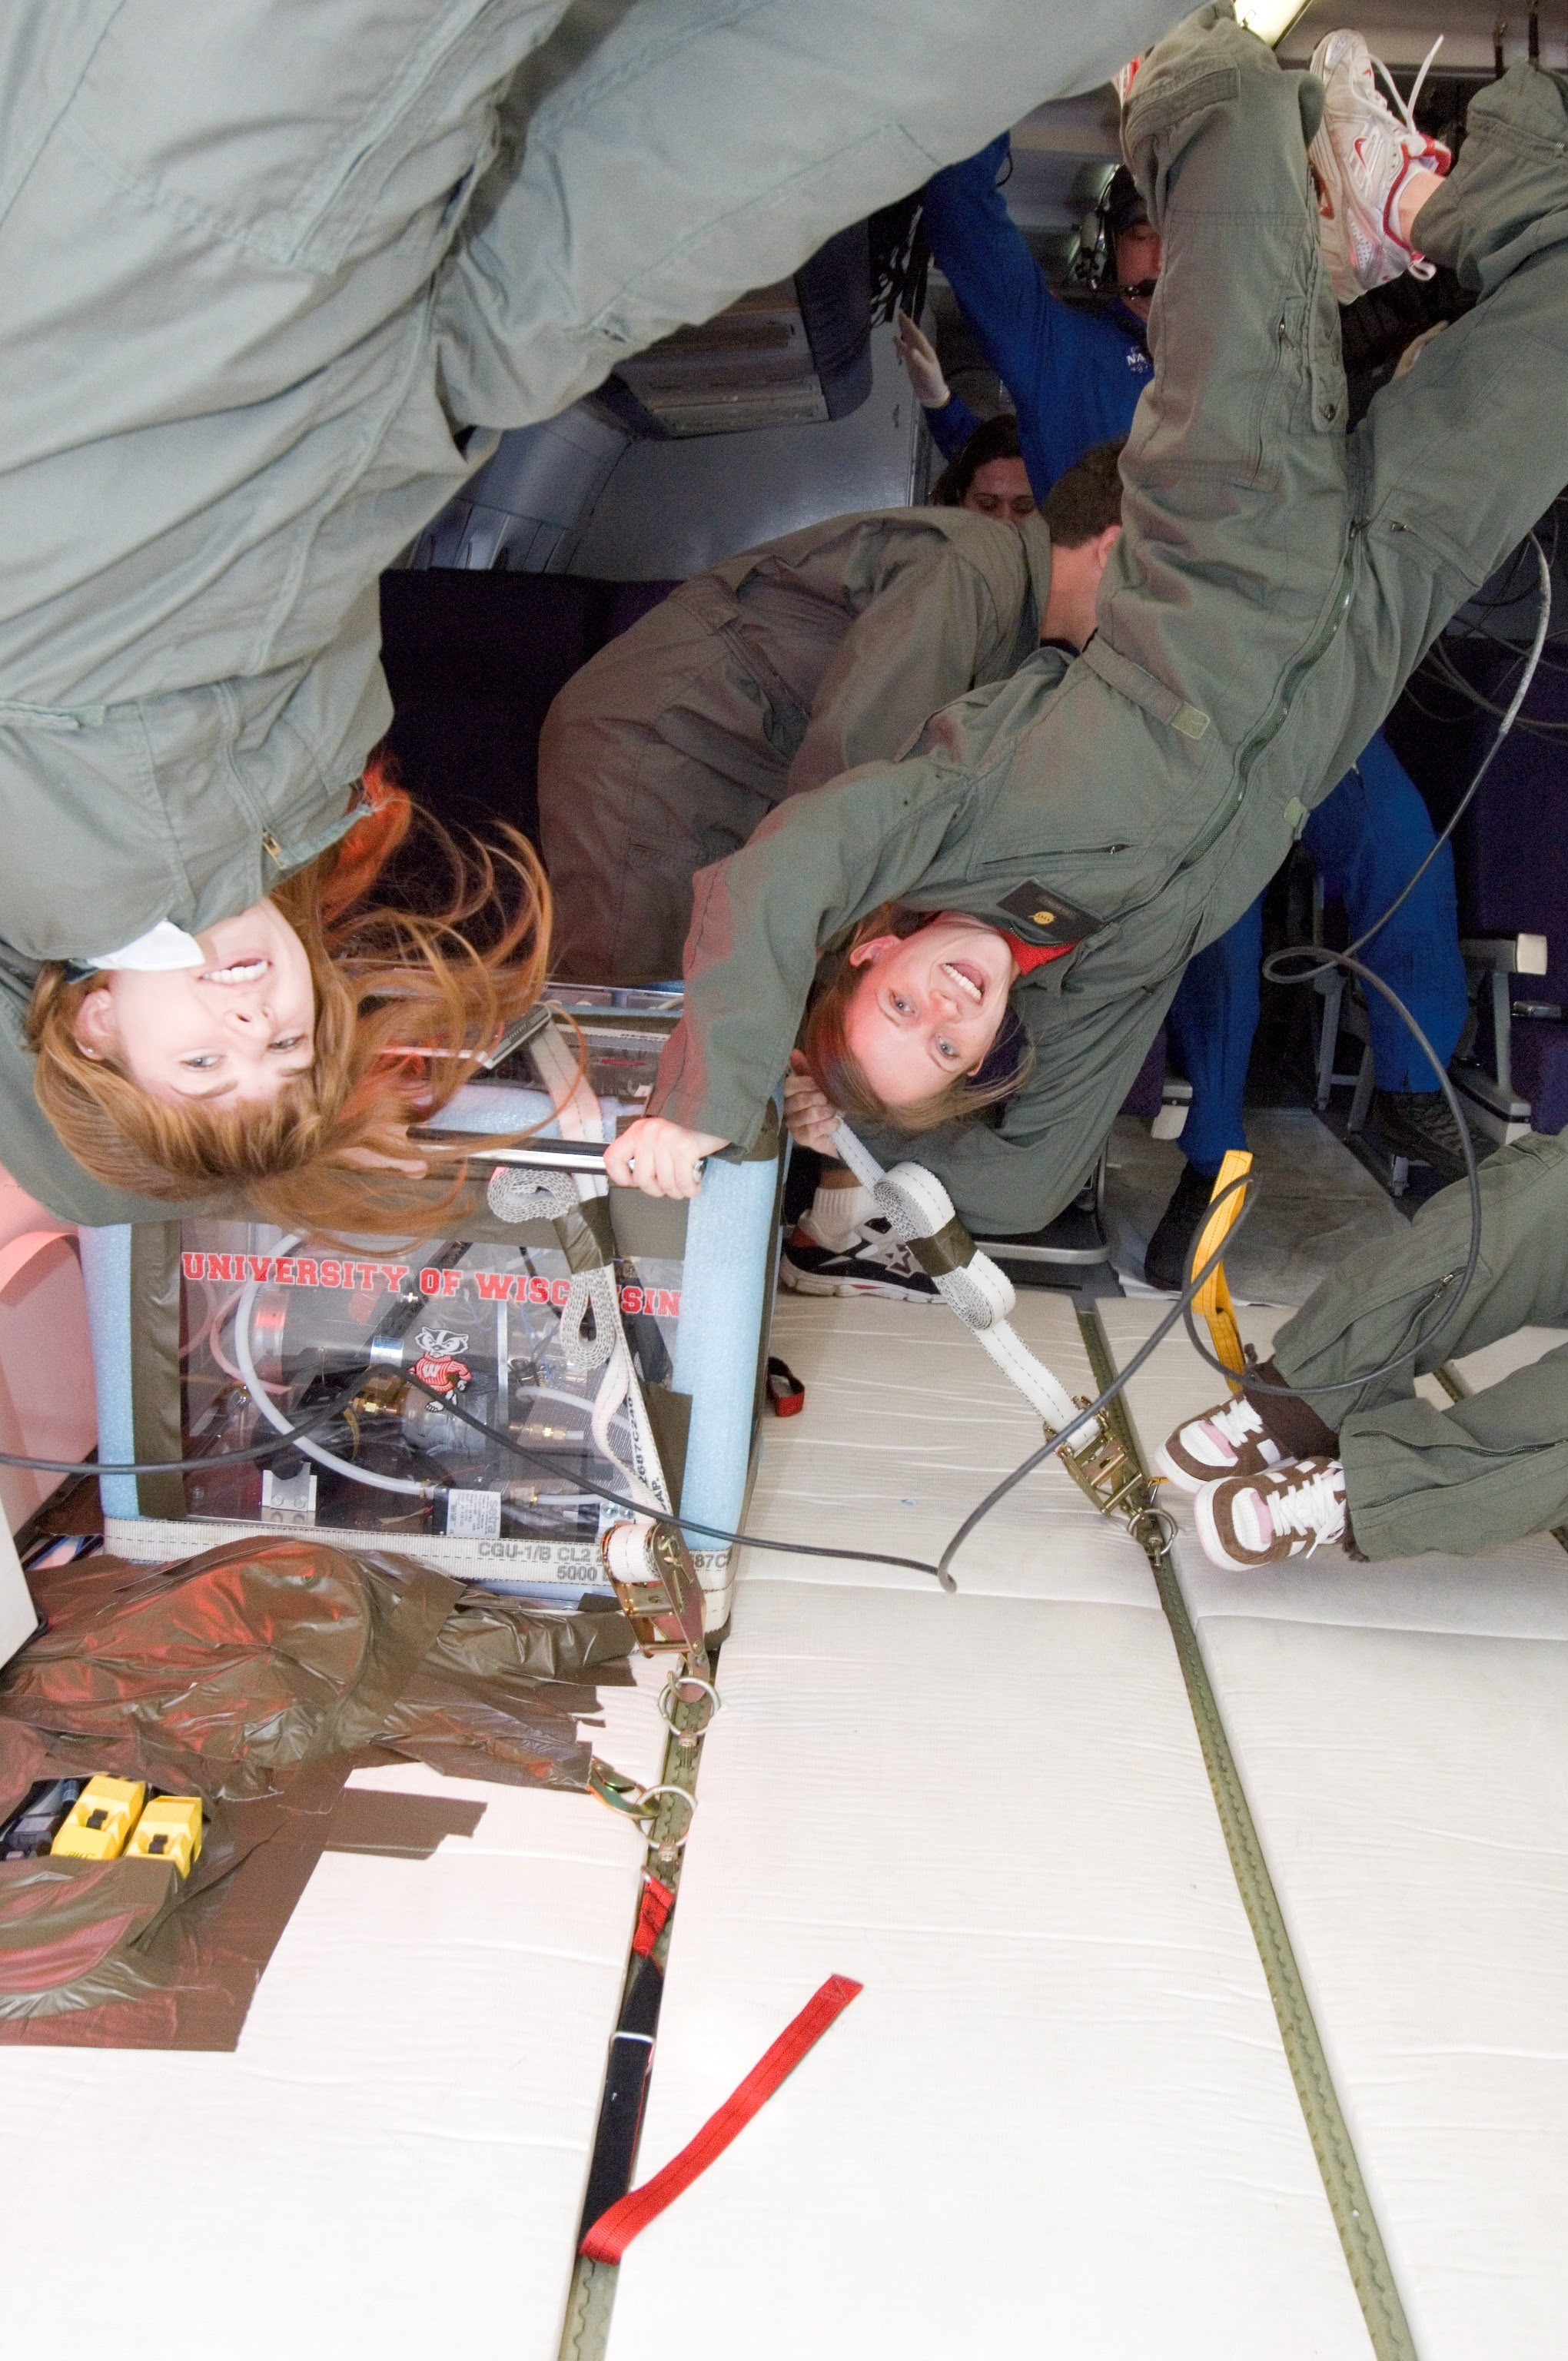 Planet's Lisa McGill in NASA's Zero Gravity Weightless Lab. Image courtesy of Lisa McGill.